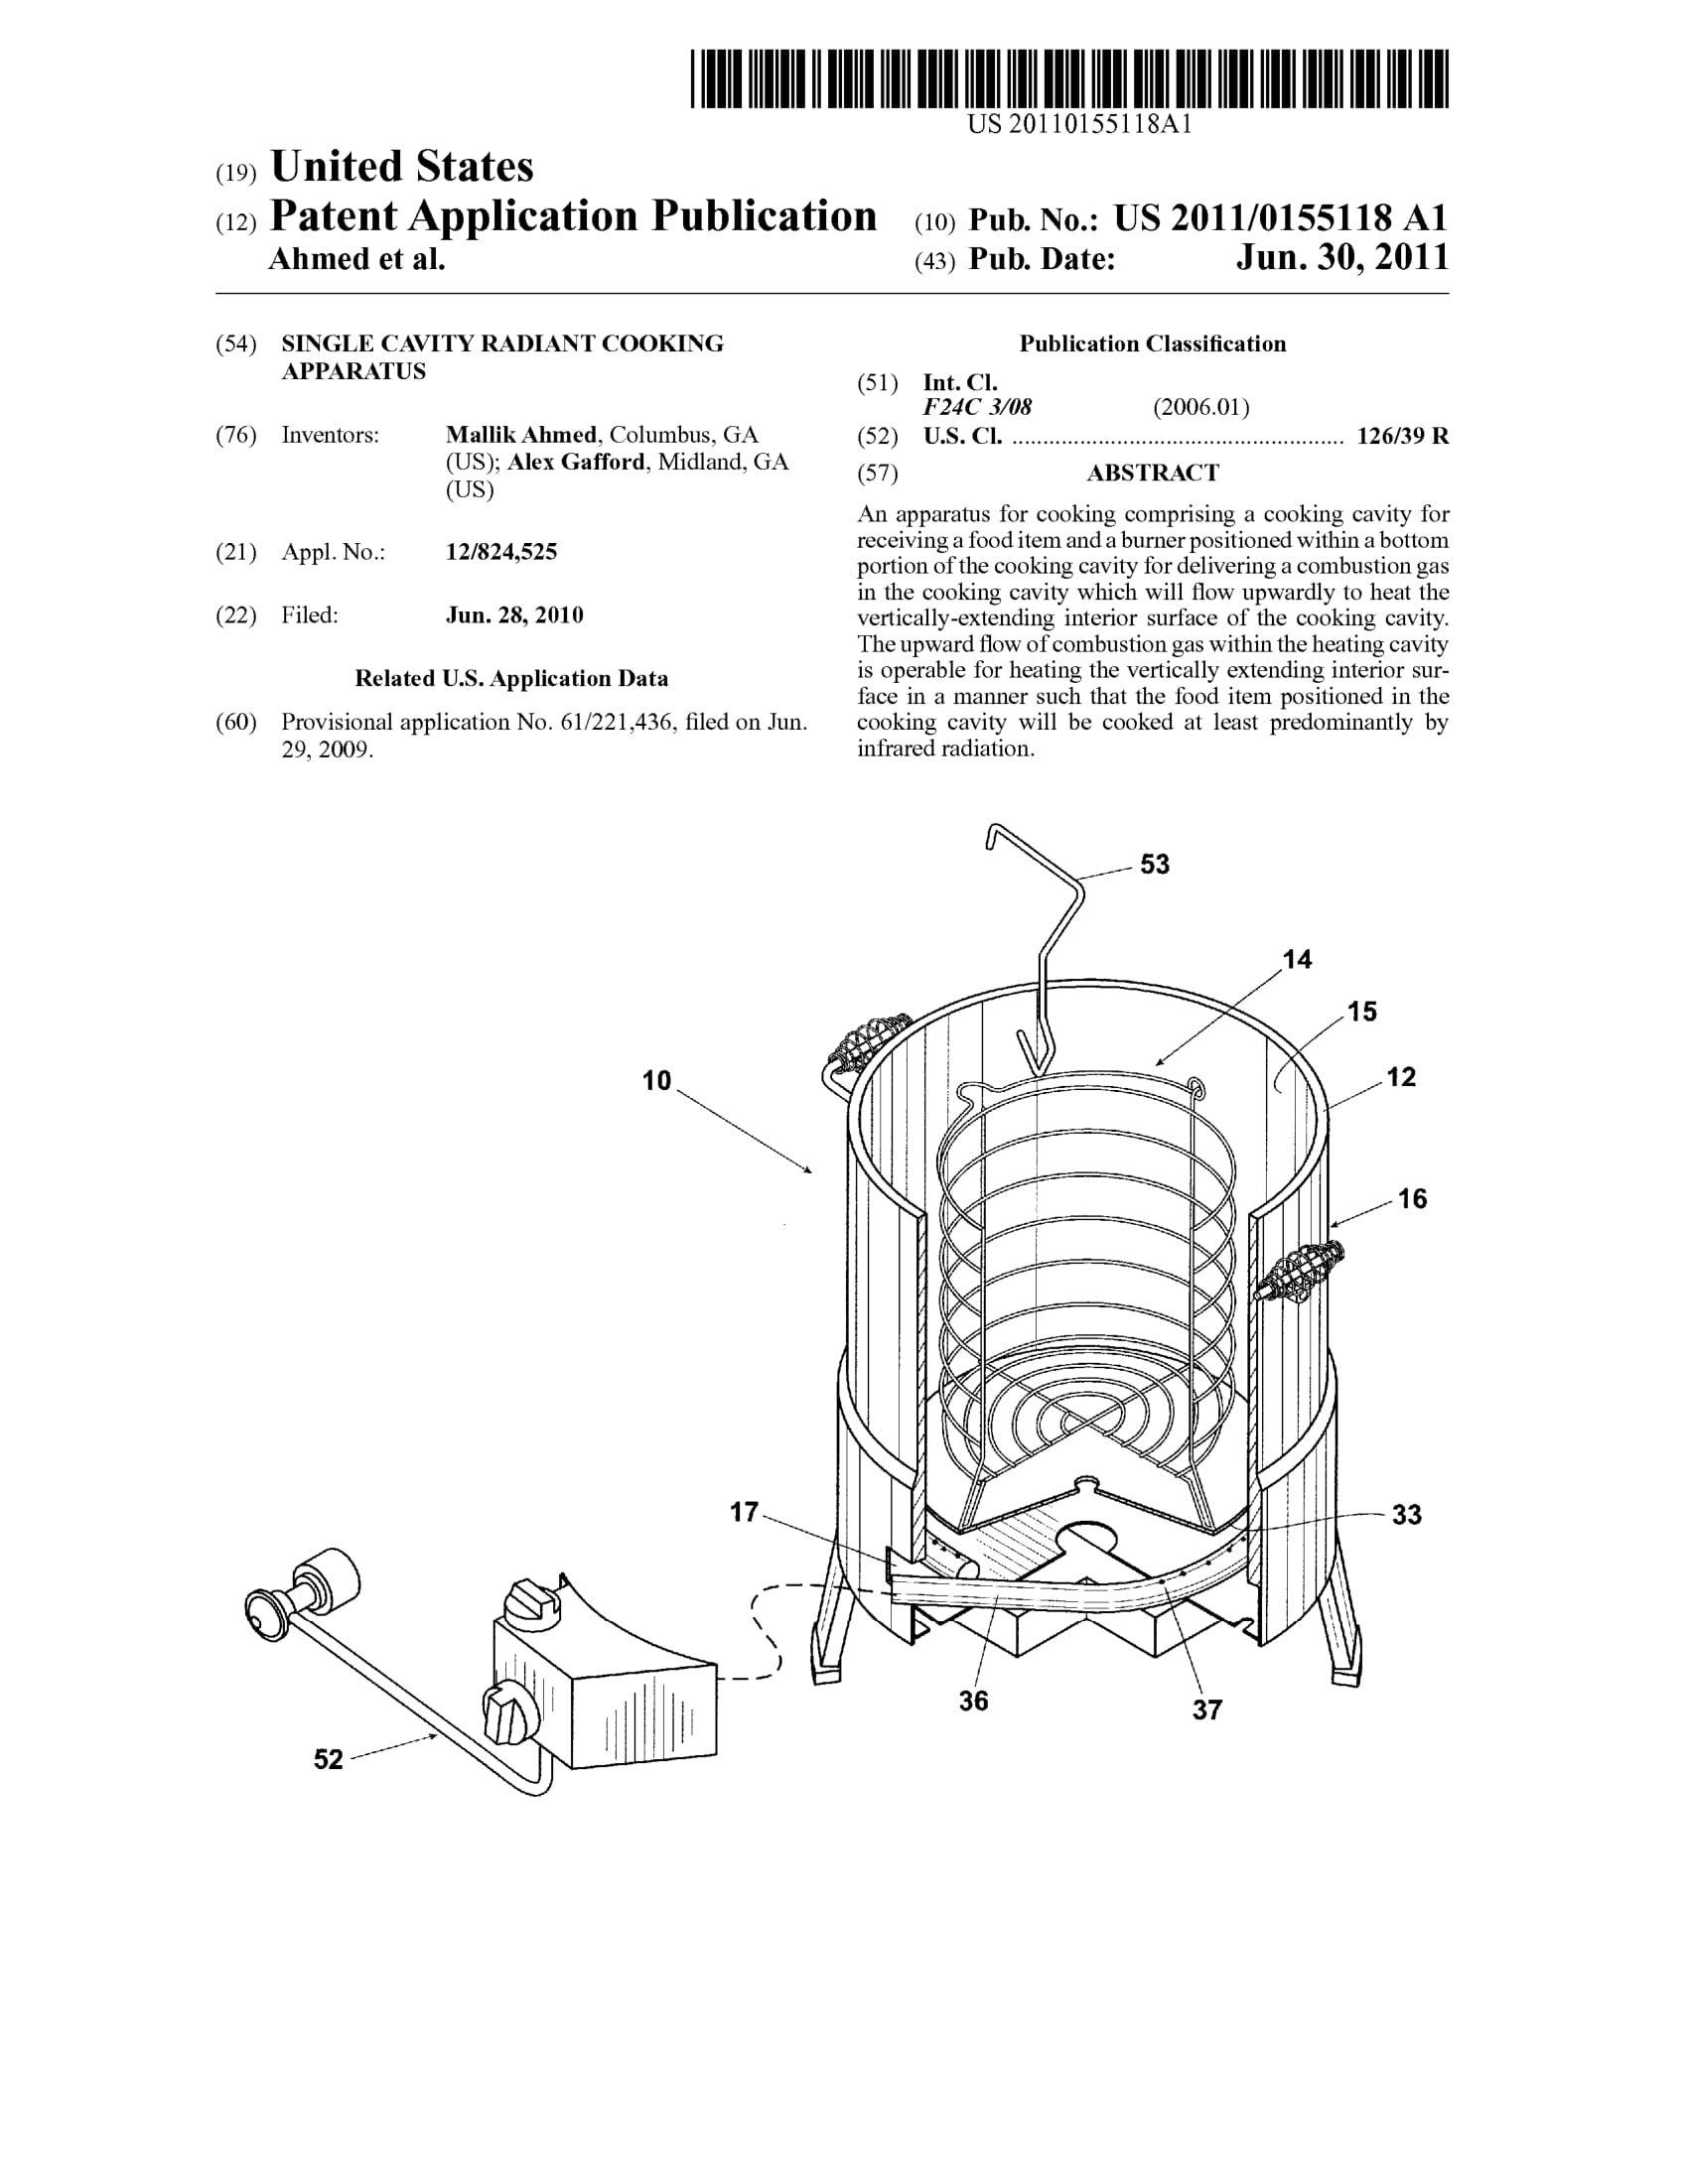 US20110155118 Charbroil radiant cooking apparatus-1